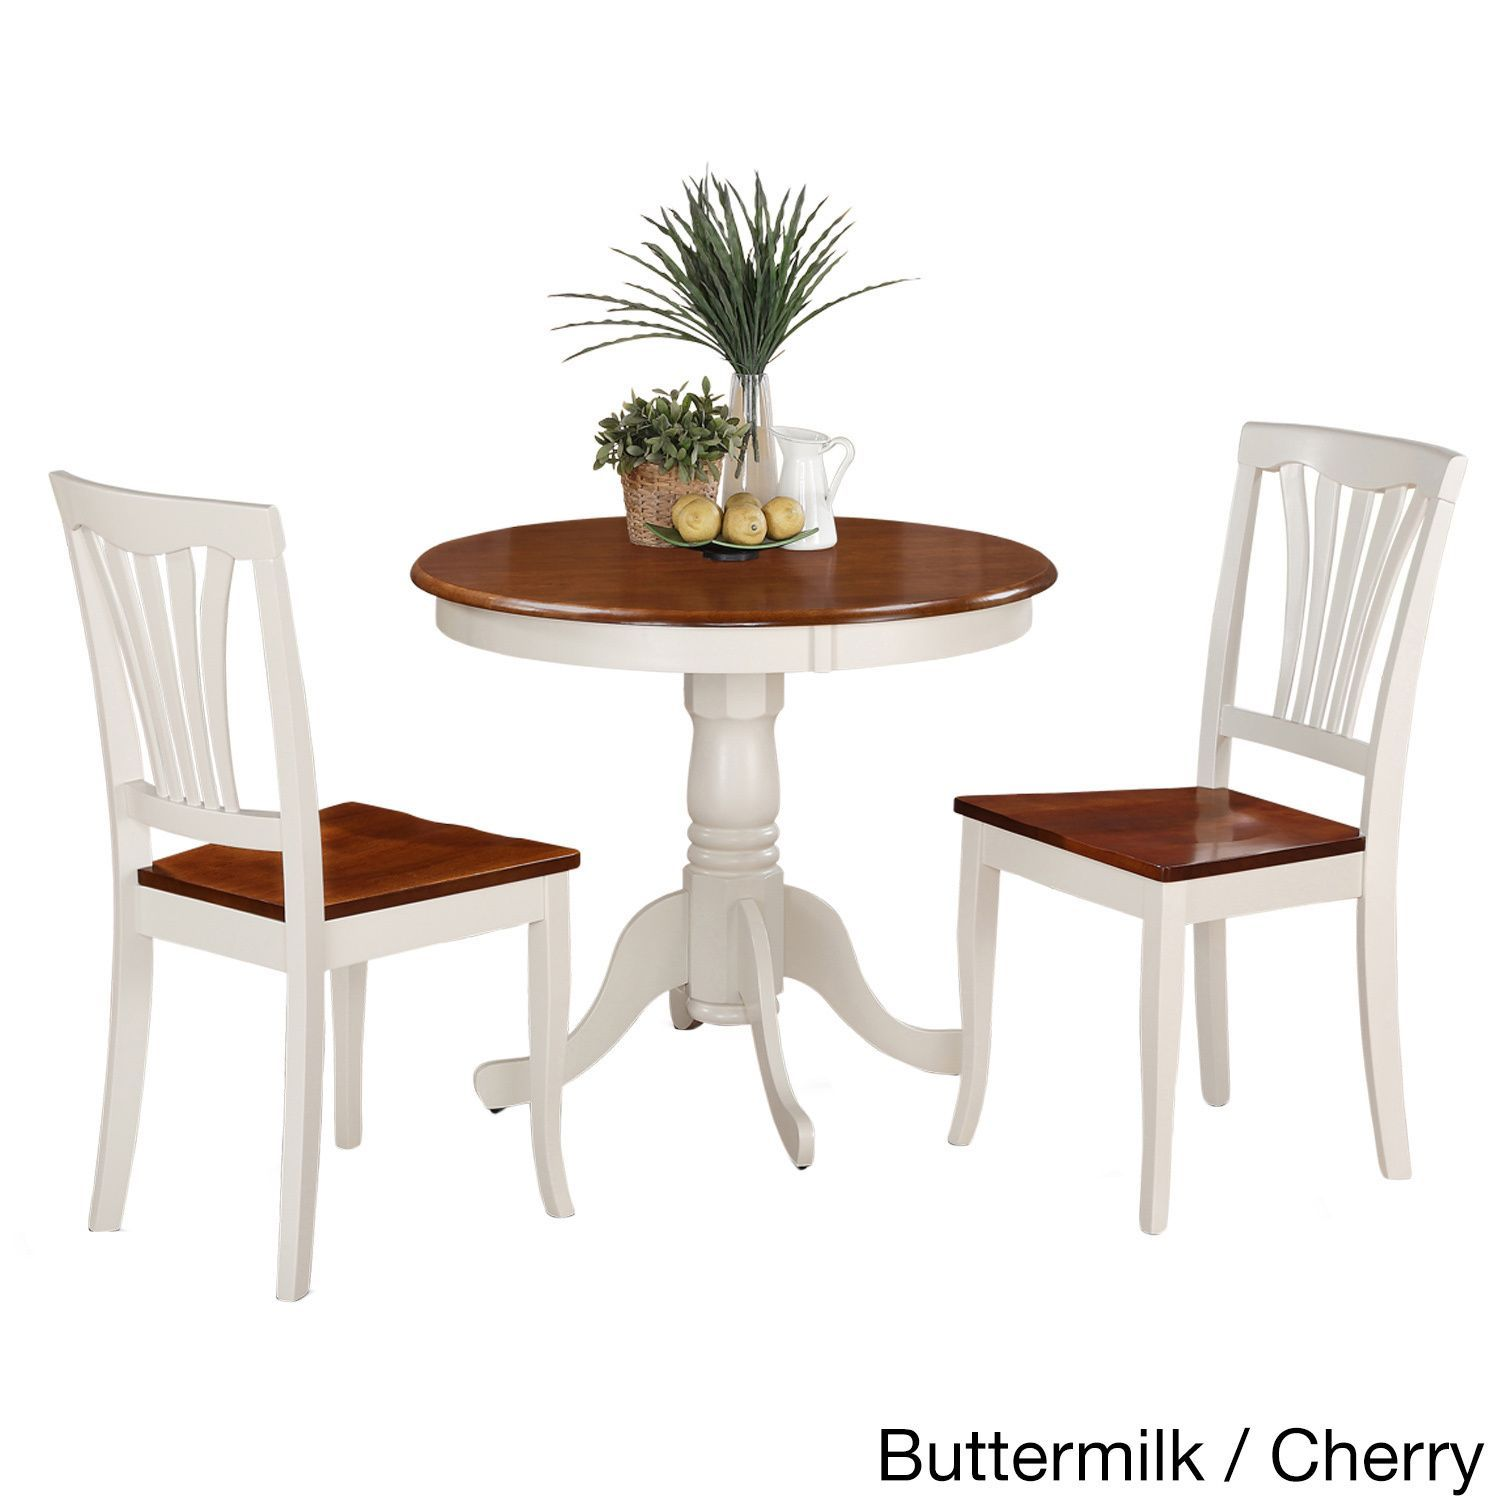 three piece kitchen sets nj cabinets 3 nook dining set small table and 2 chairs buttermilk cherry white size